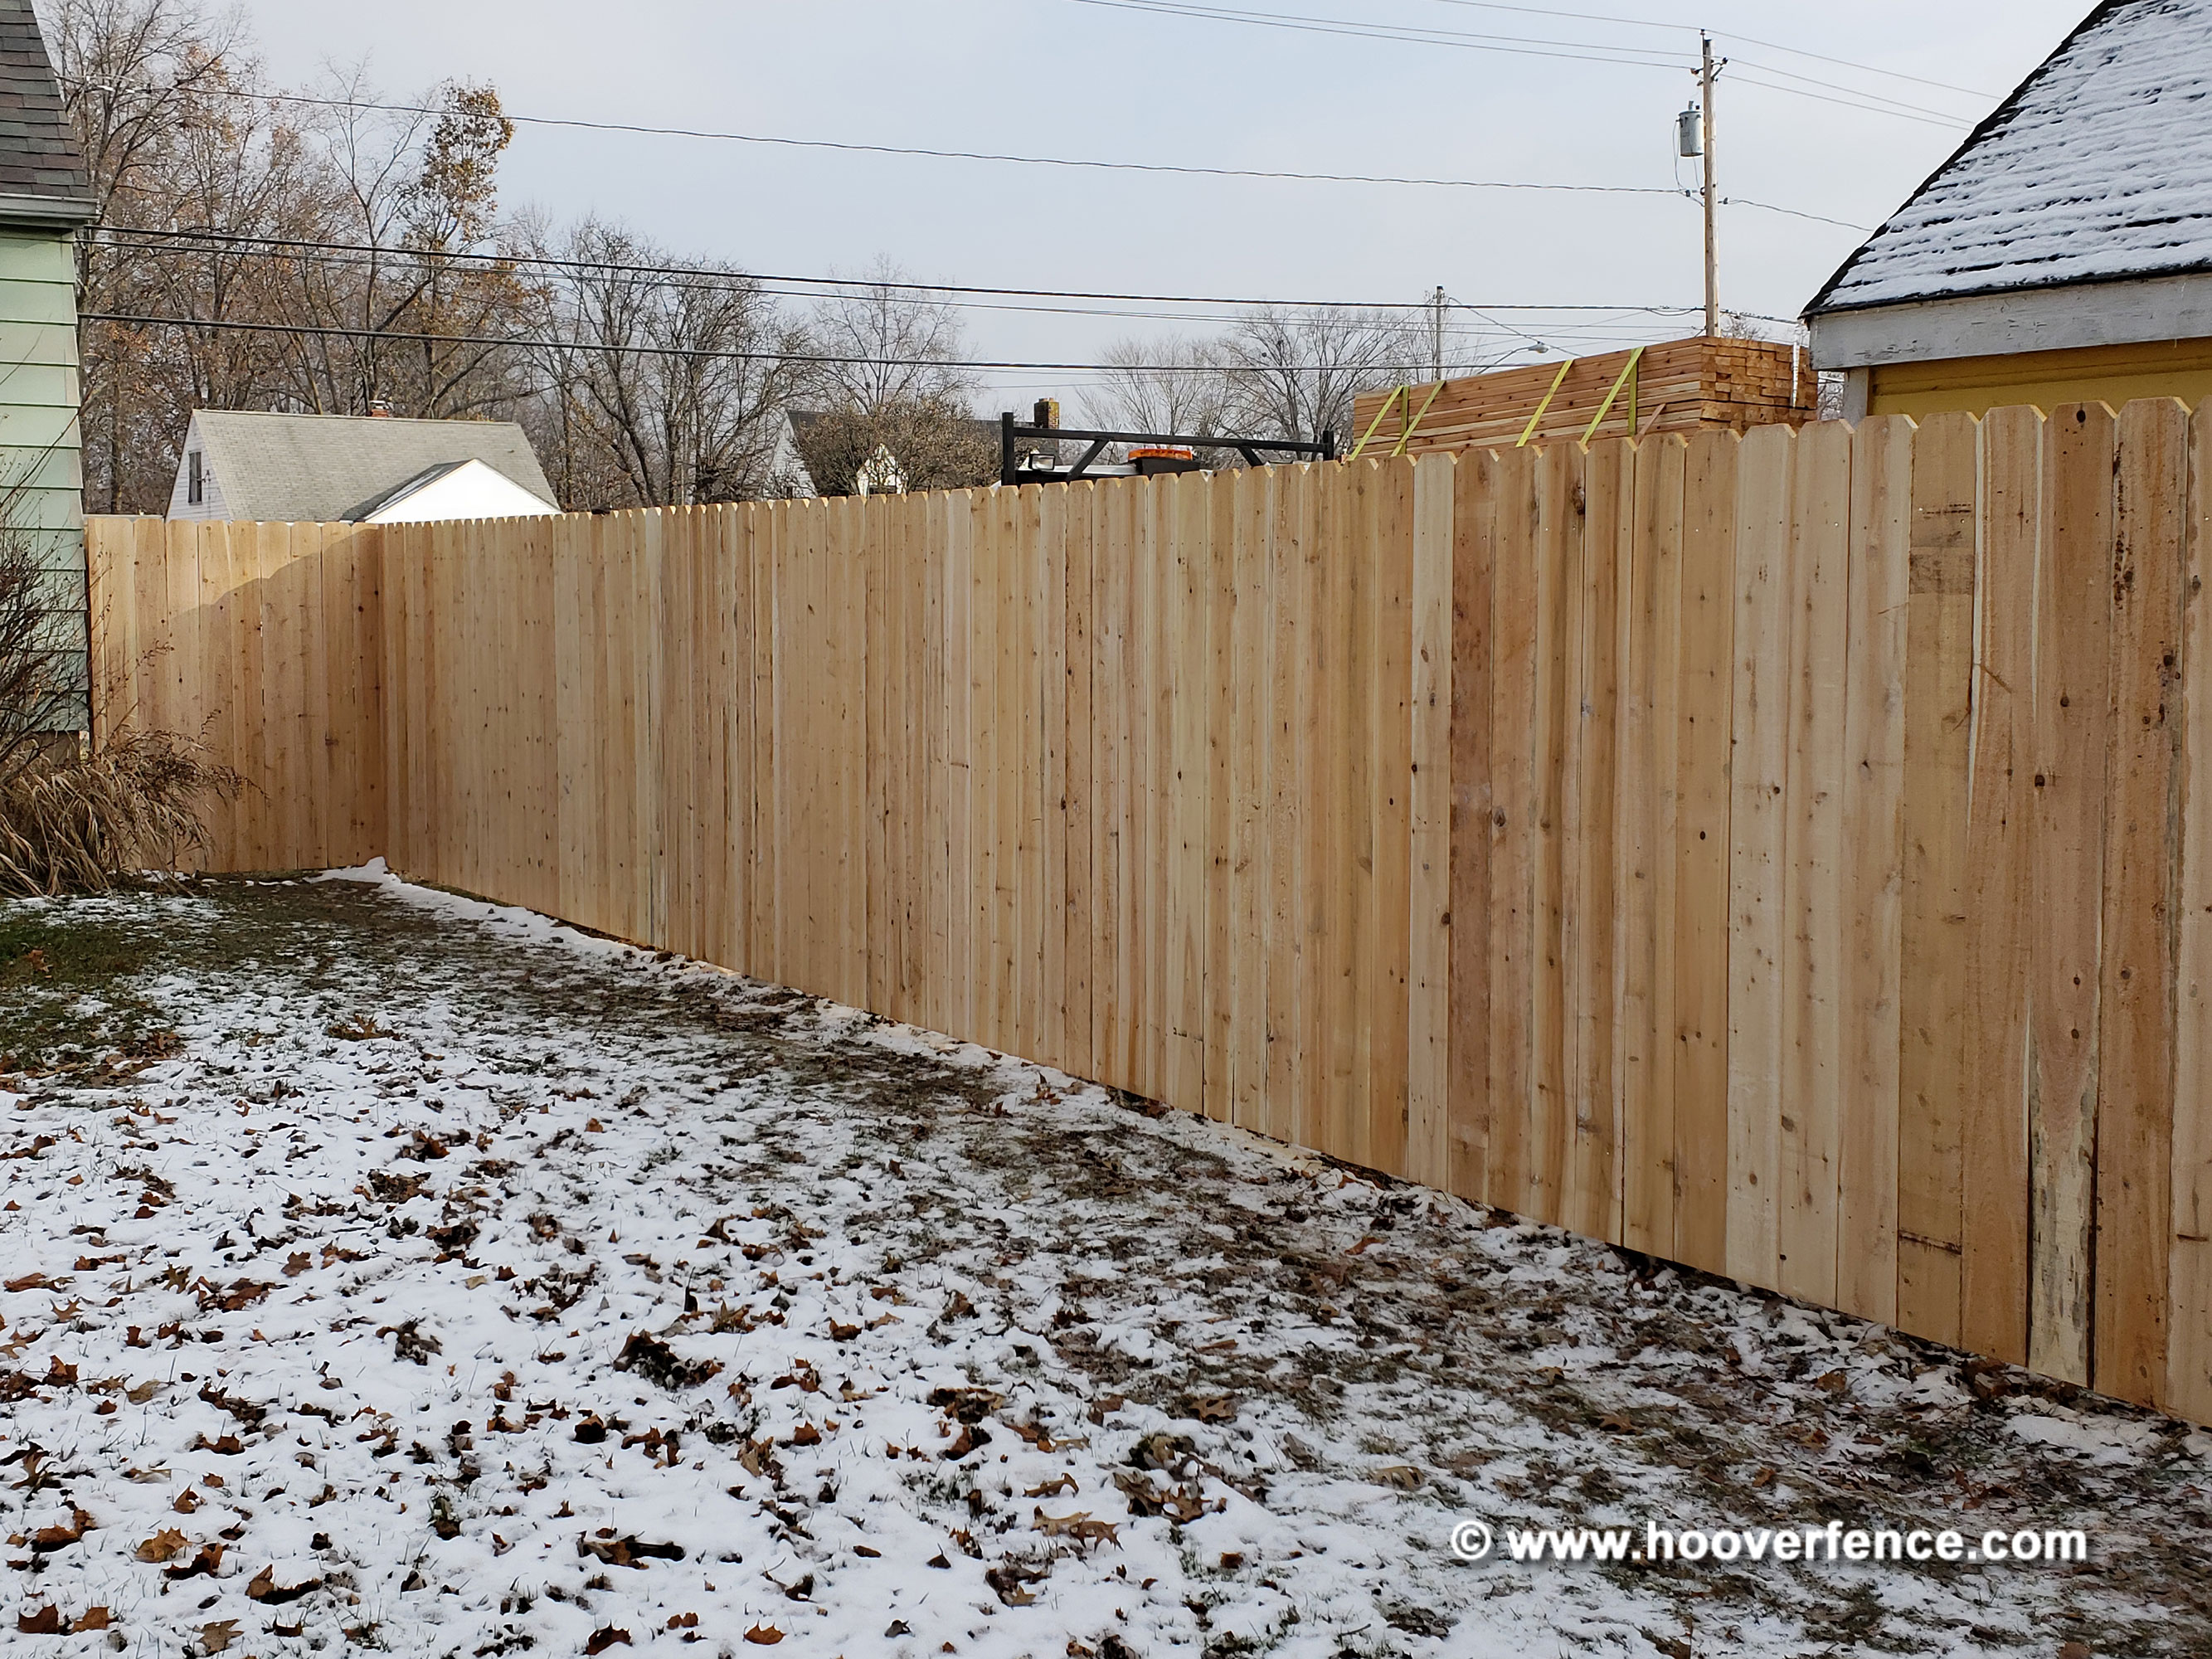 Solid Dog Ear Fence Install - Cedar - Steel Posts & IS-FBS Wood to Steel Brackets